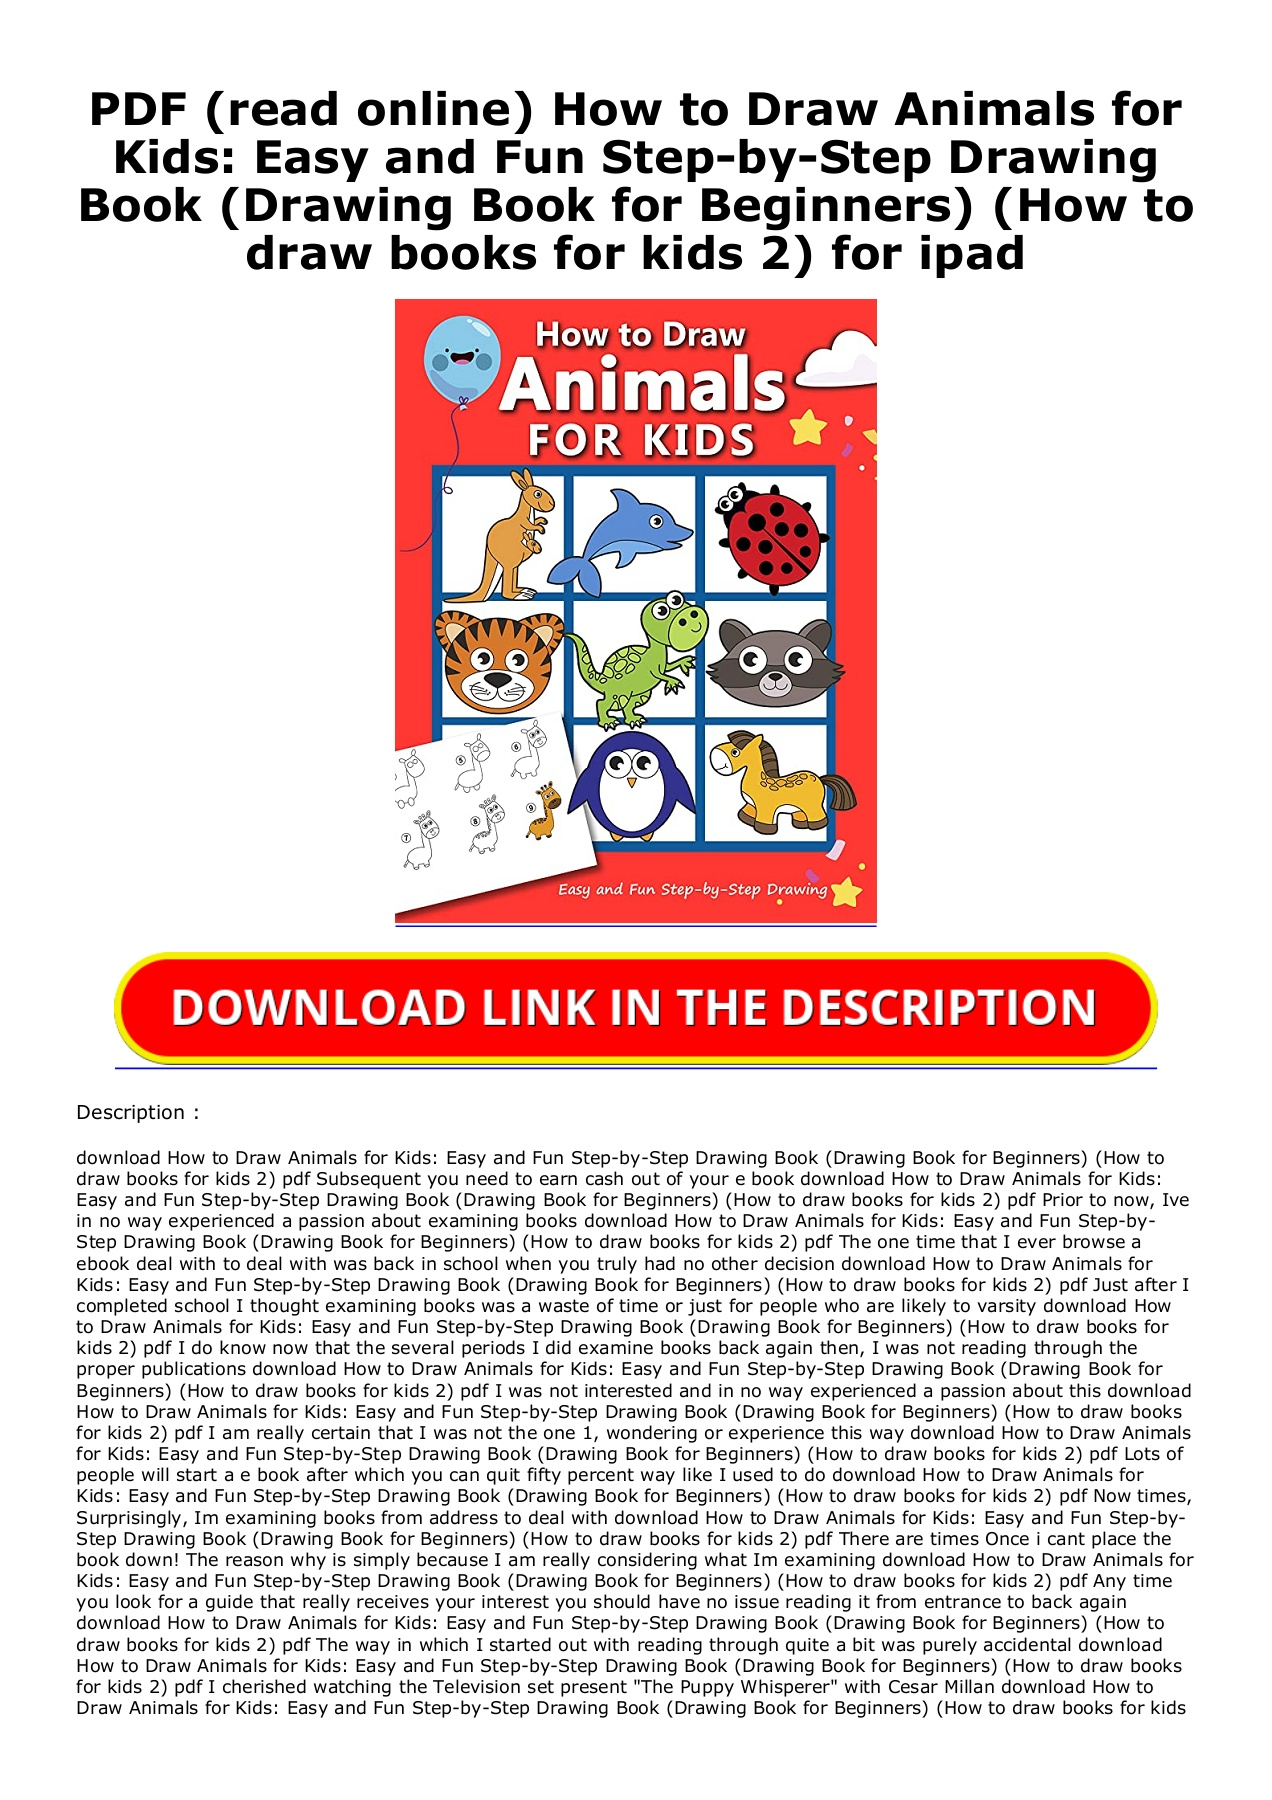 Pdf Read Online How To Draw Animals For Kids Easy And Fun Step By Step Drawing Book Drawing Book For Beginners How To Draw Books For Kids 2 For Ipad Flip Ebook Pages 1